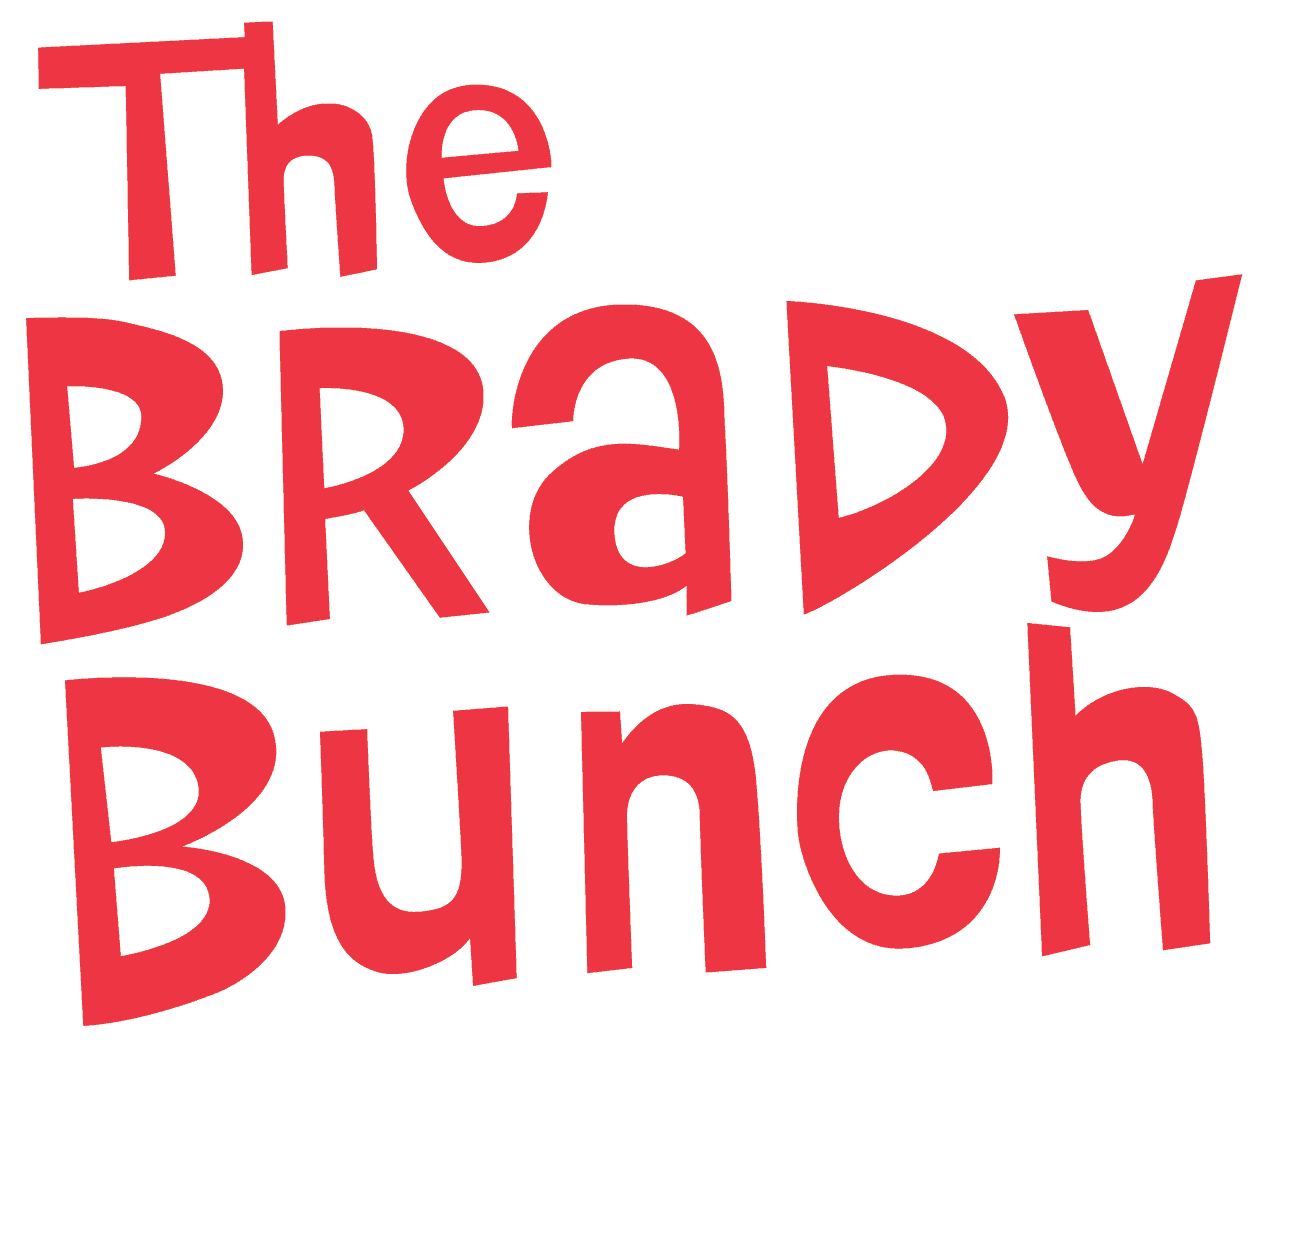 The Brady Bunch Party Game Logo